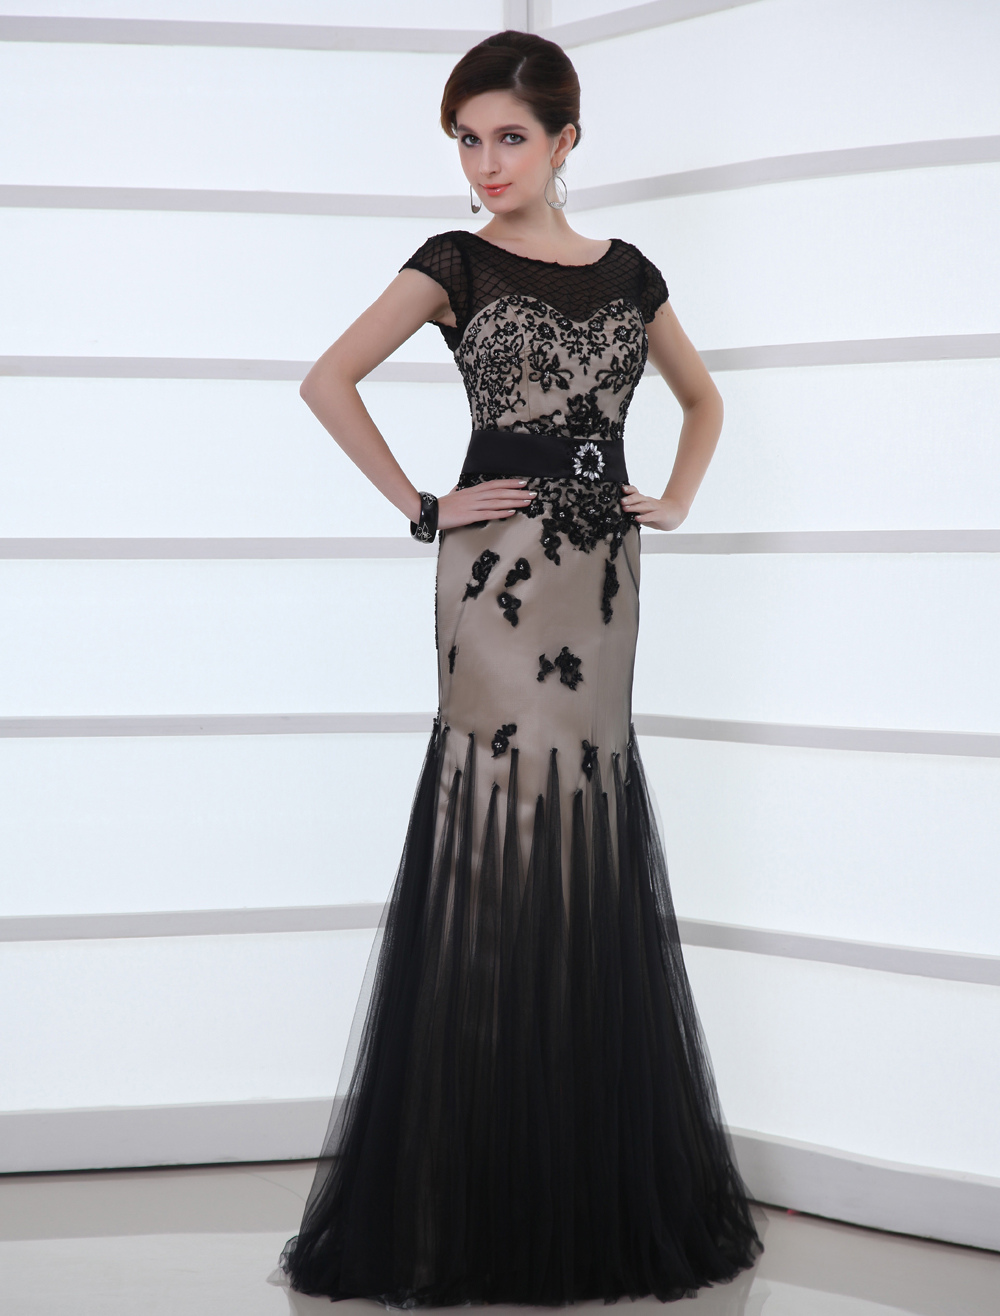 Lace Applique Black Wedding Dress Mermaid Illusion Neckline Satin Sash